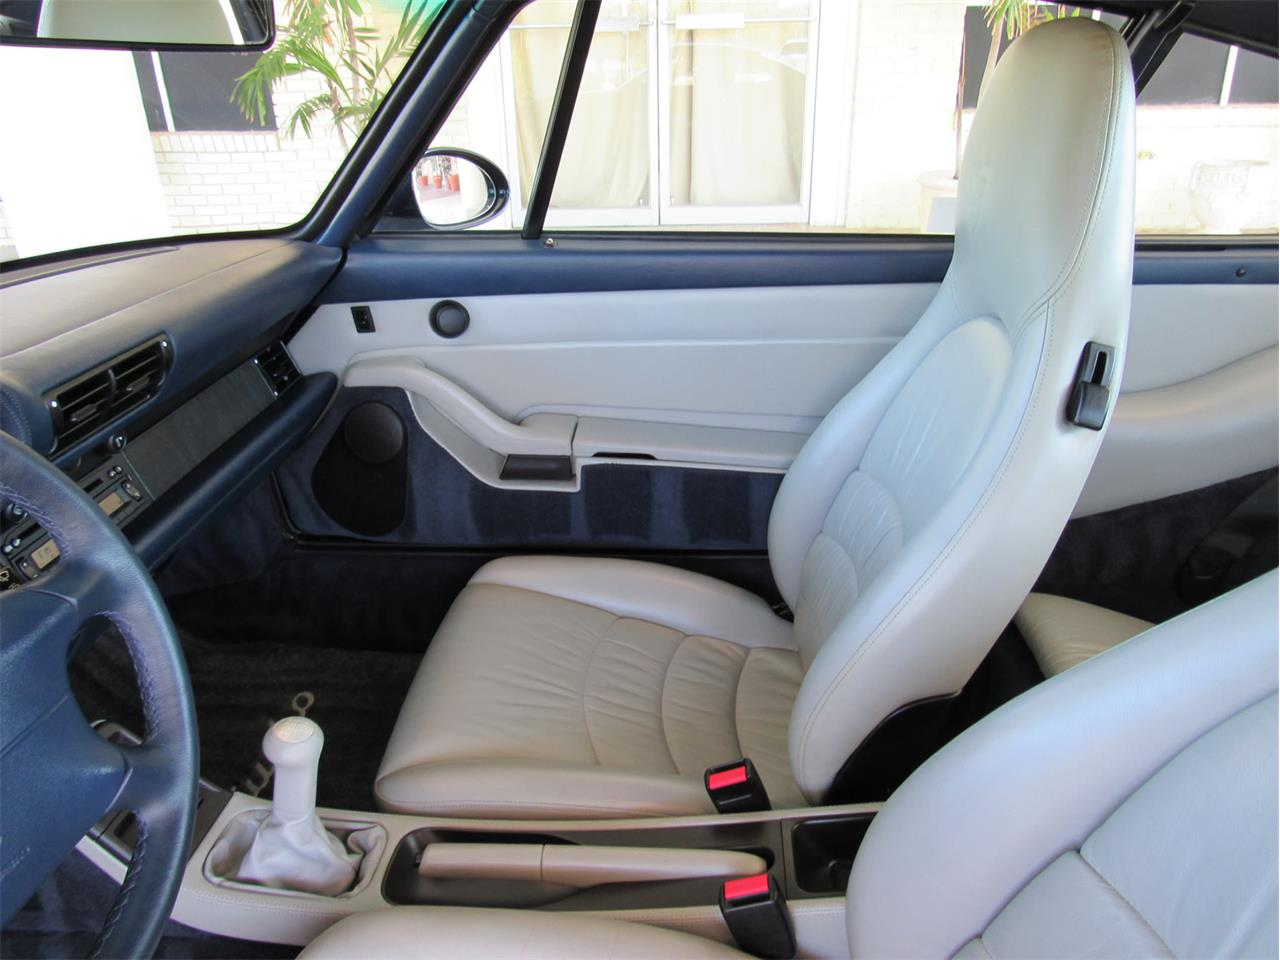 Large Picture of 1996 993/911 Carrera Turbo located in Florida Offered by Vintage Motors Sarasota - MCL2